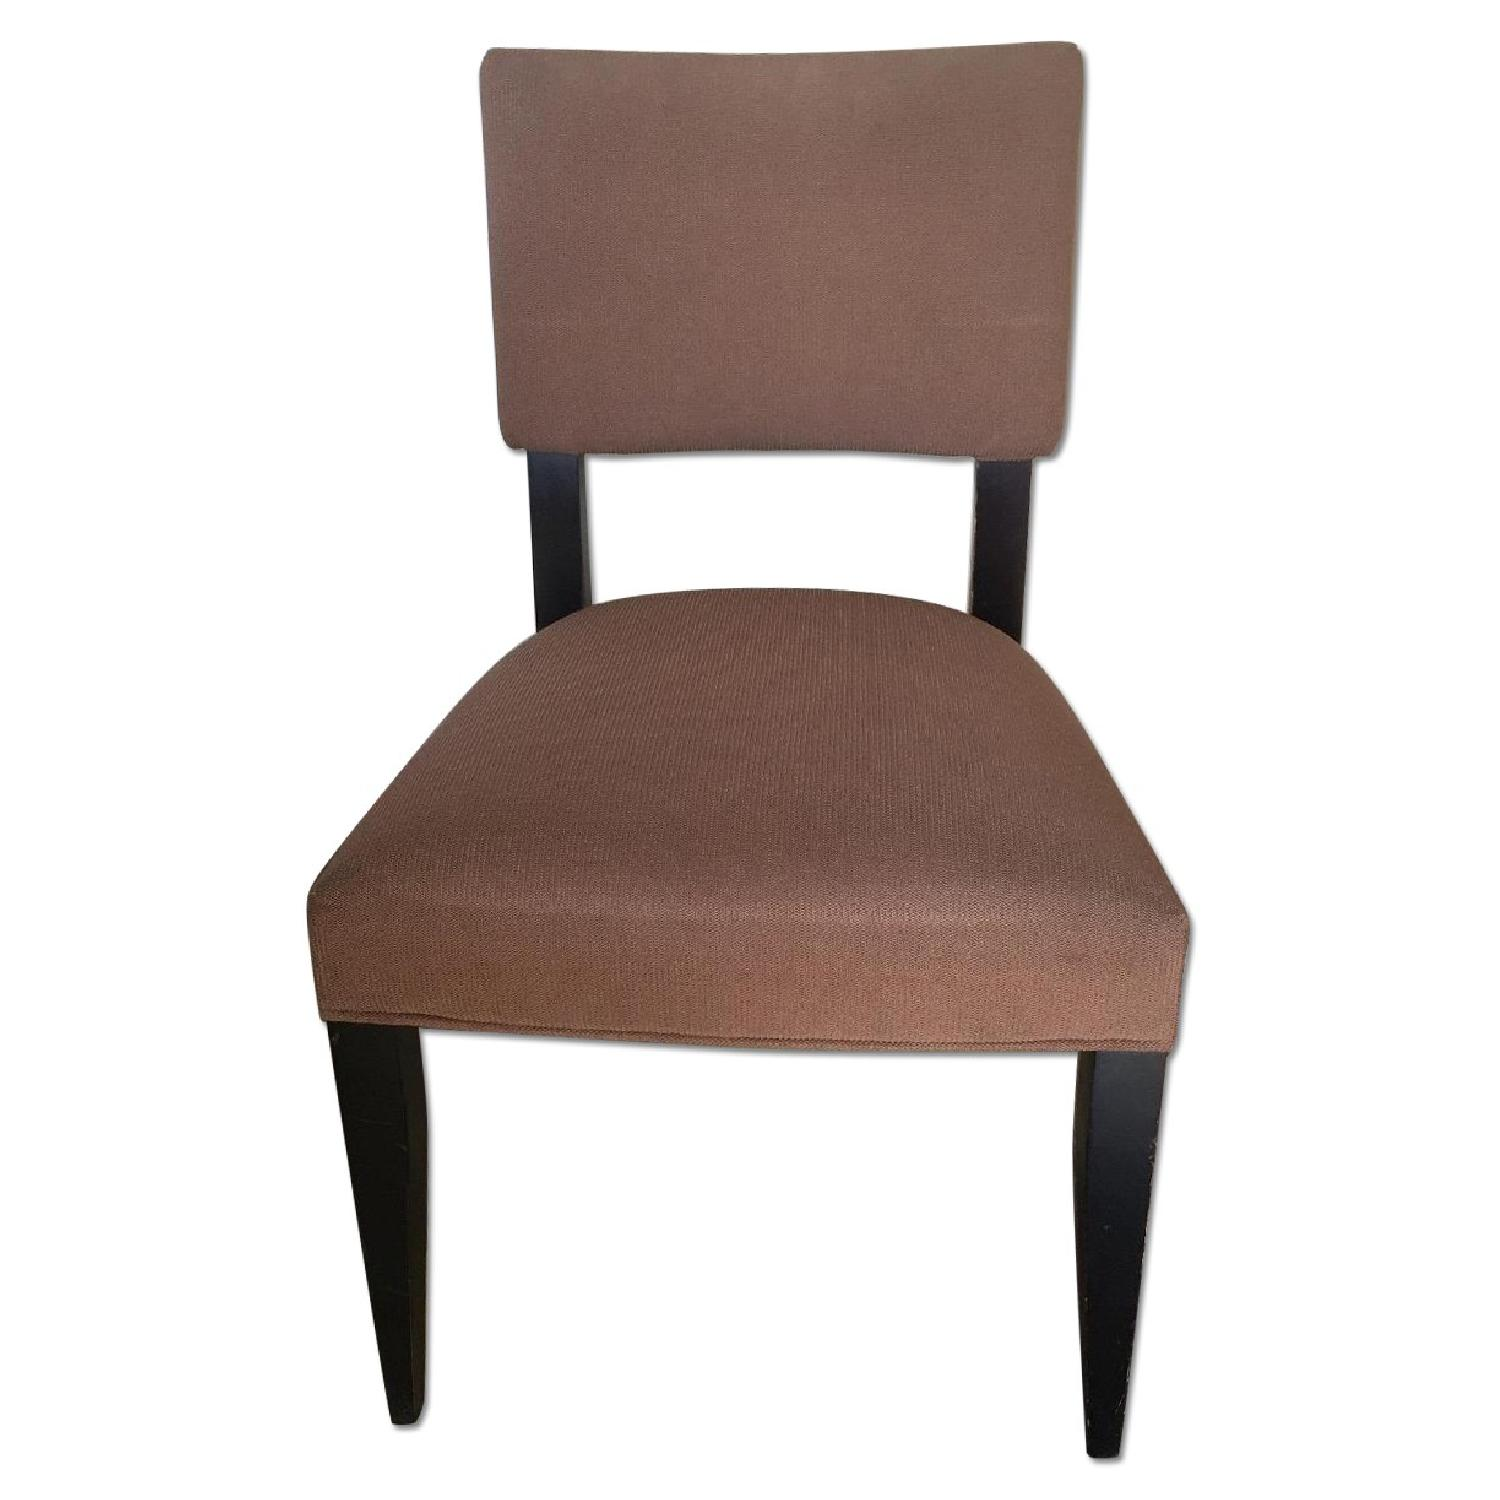 Crate & Barrel Cody Dining Chairs - image-0